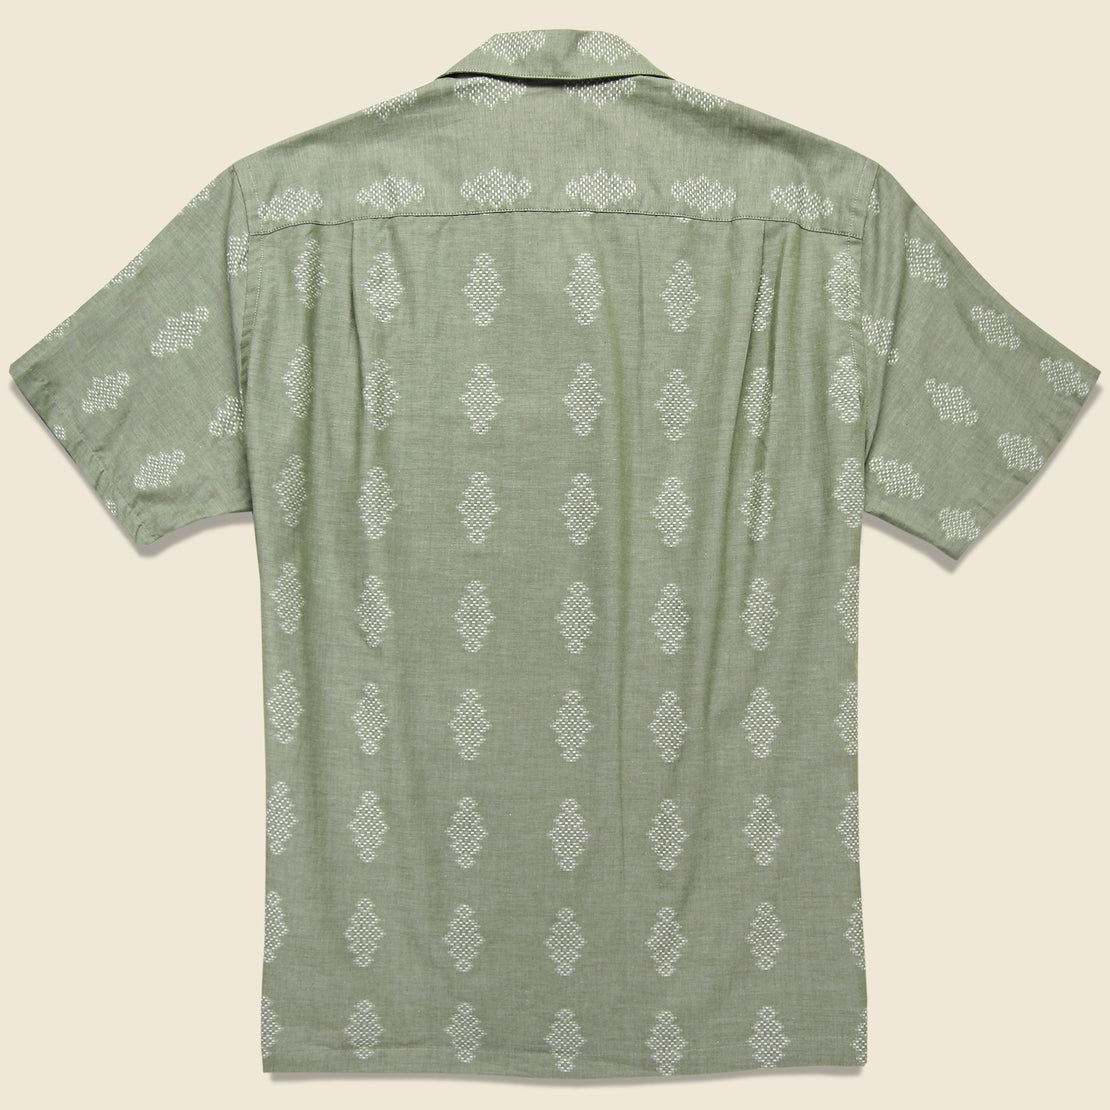 Bunch Shirt - Pale Green